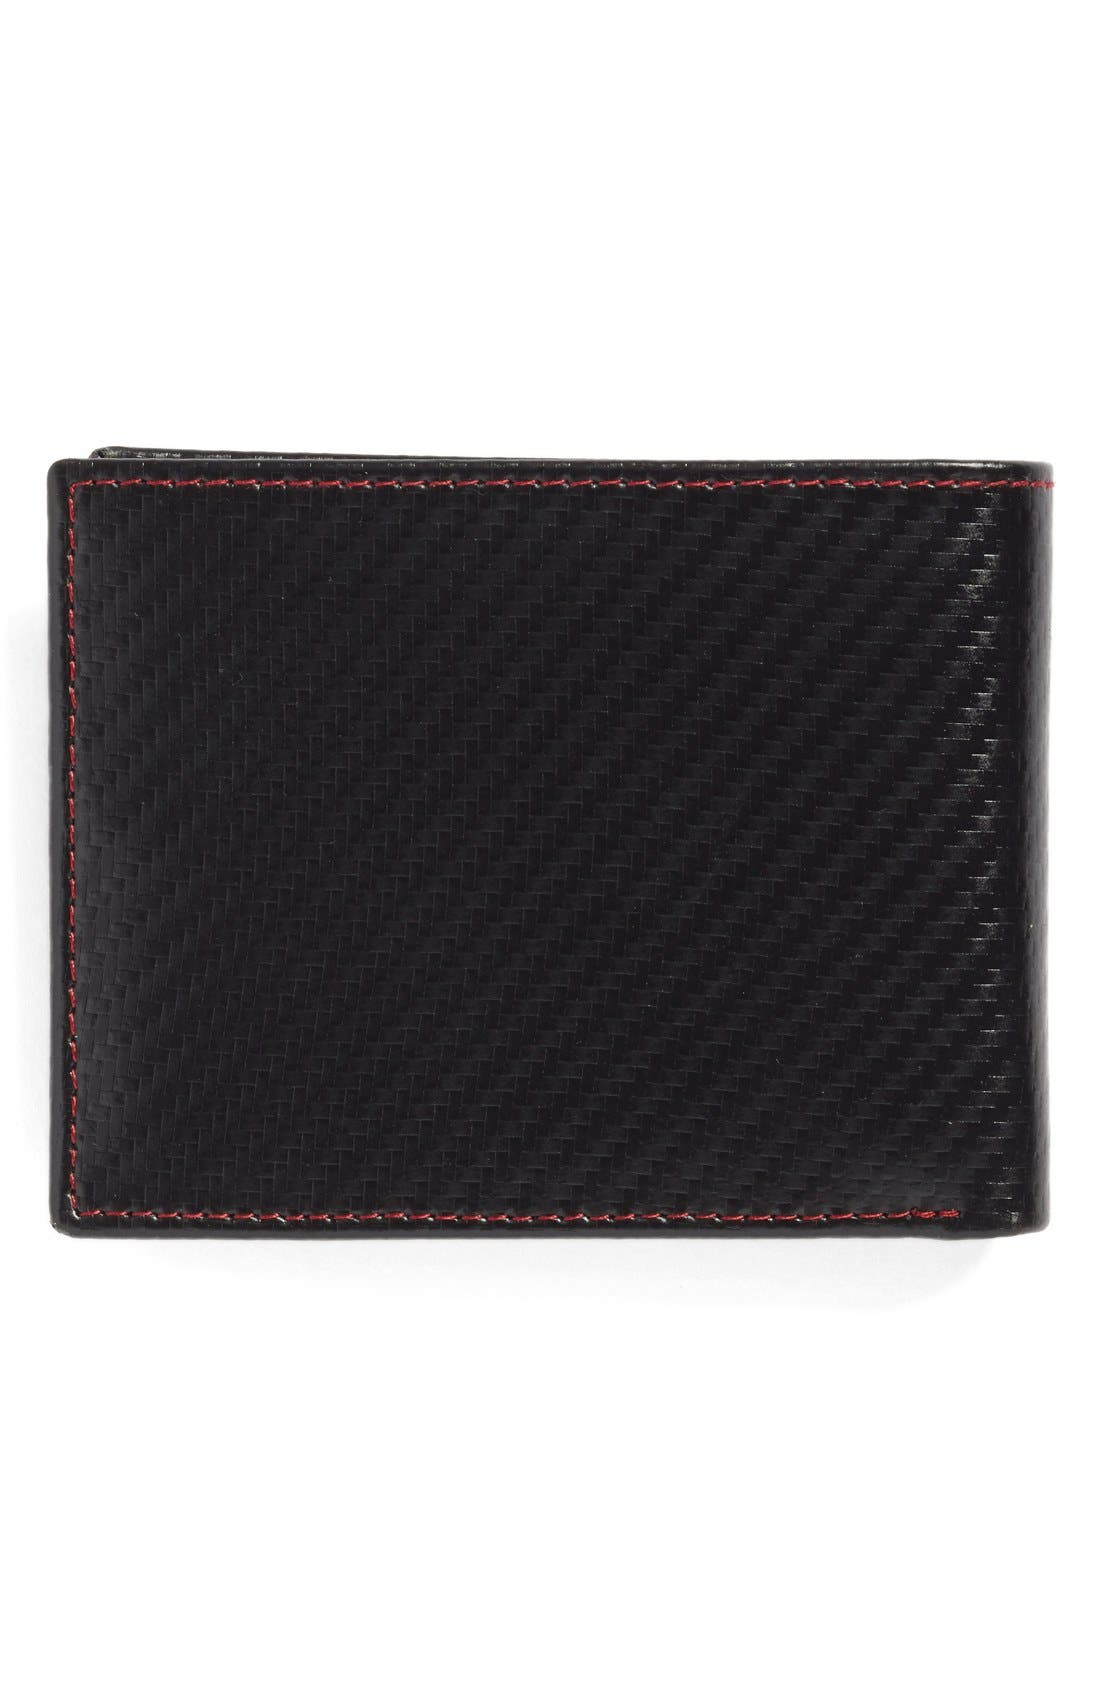 Flip Billfold Wallet,                             Alternate thumbnail 3, color,                             001